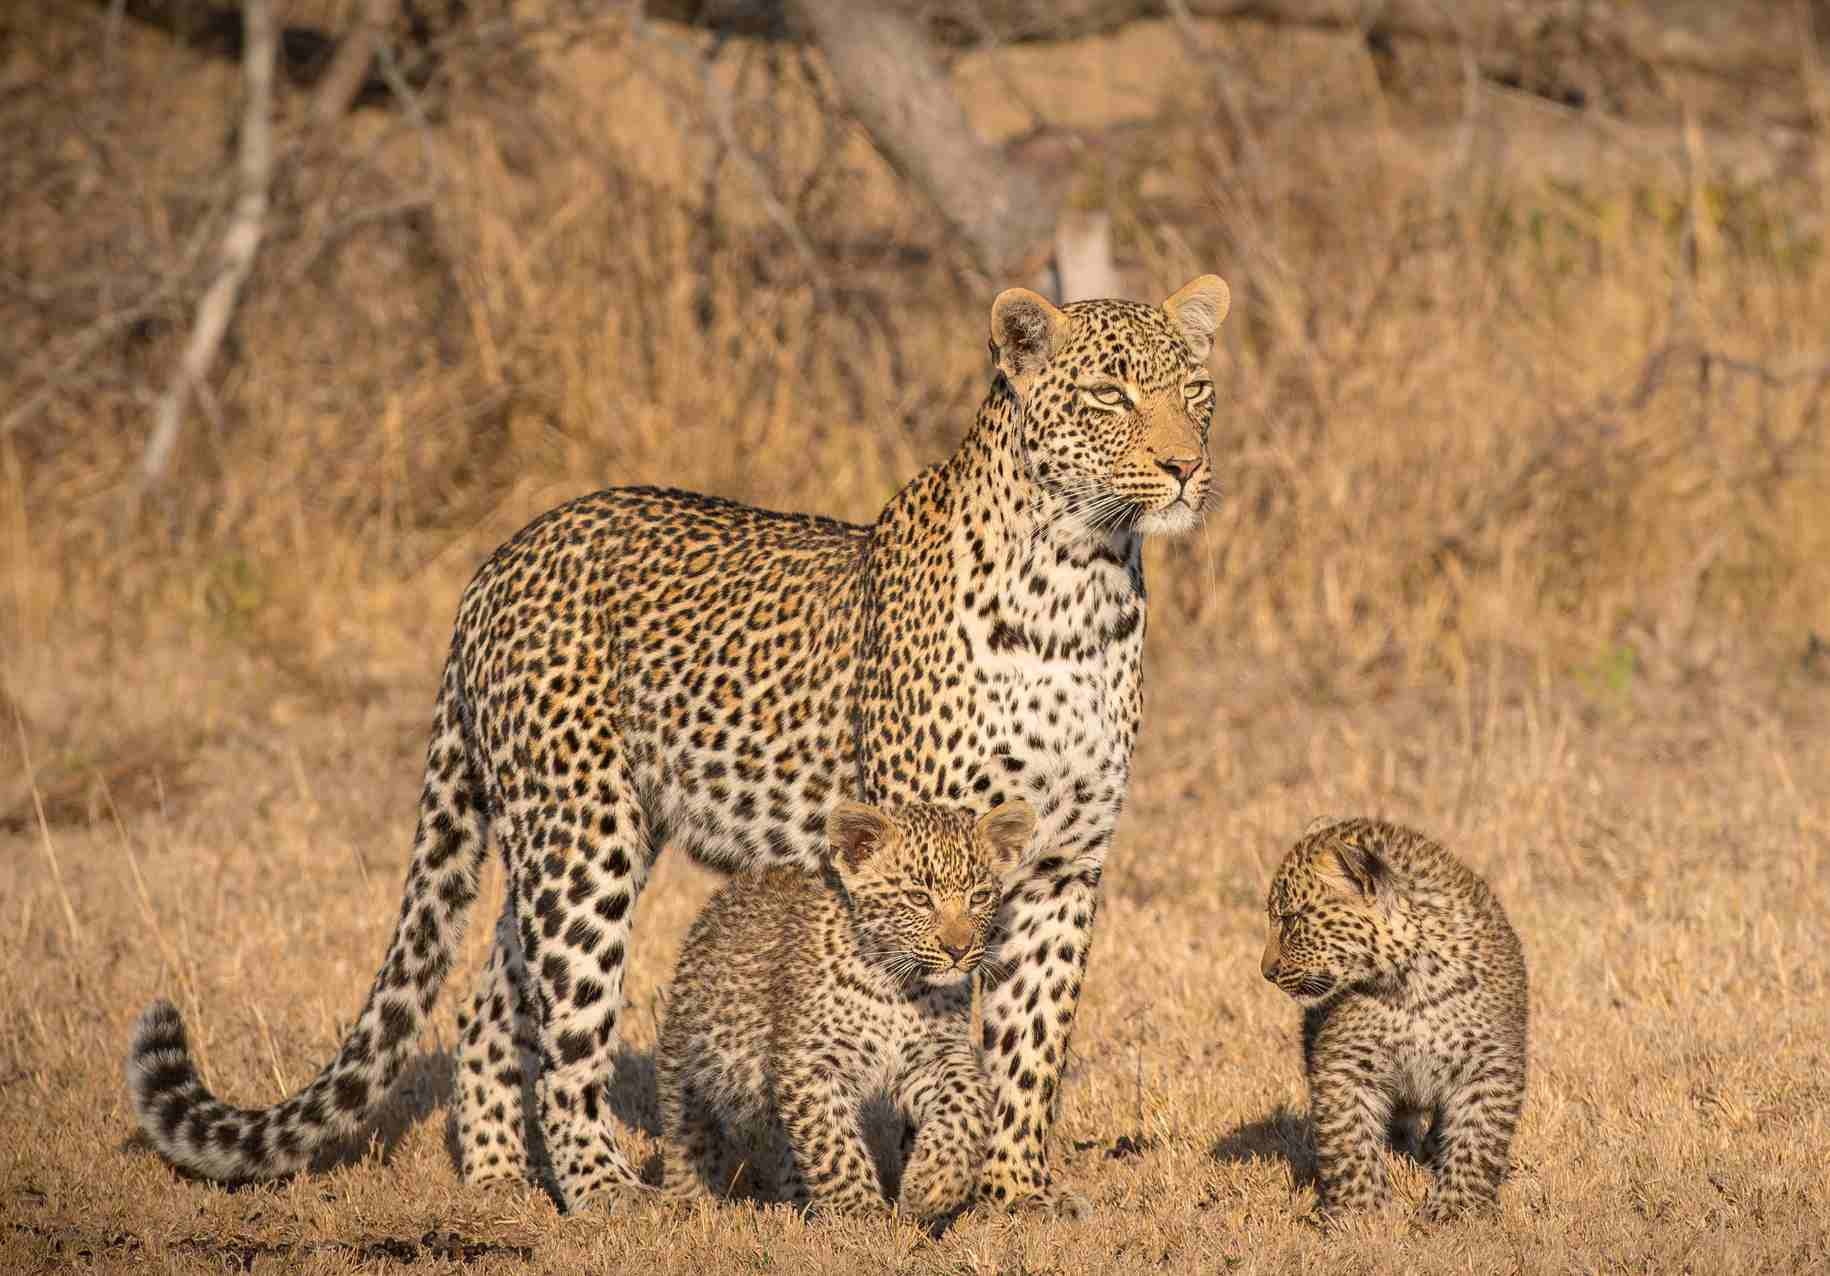 Leopard and cubs, Londolozi Game Reserve